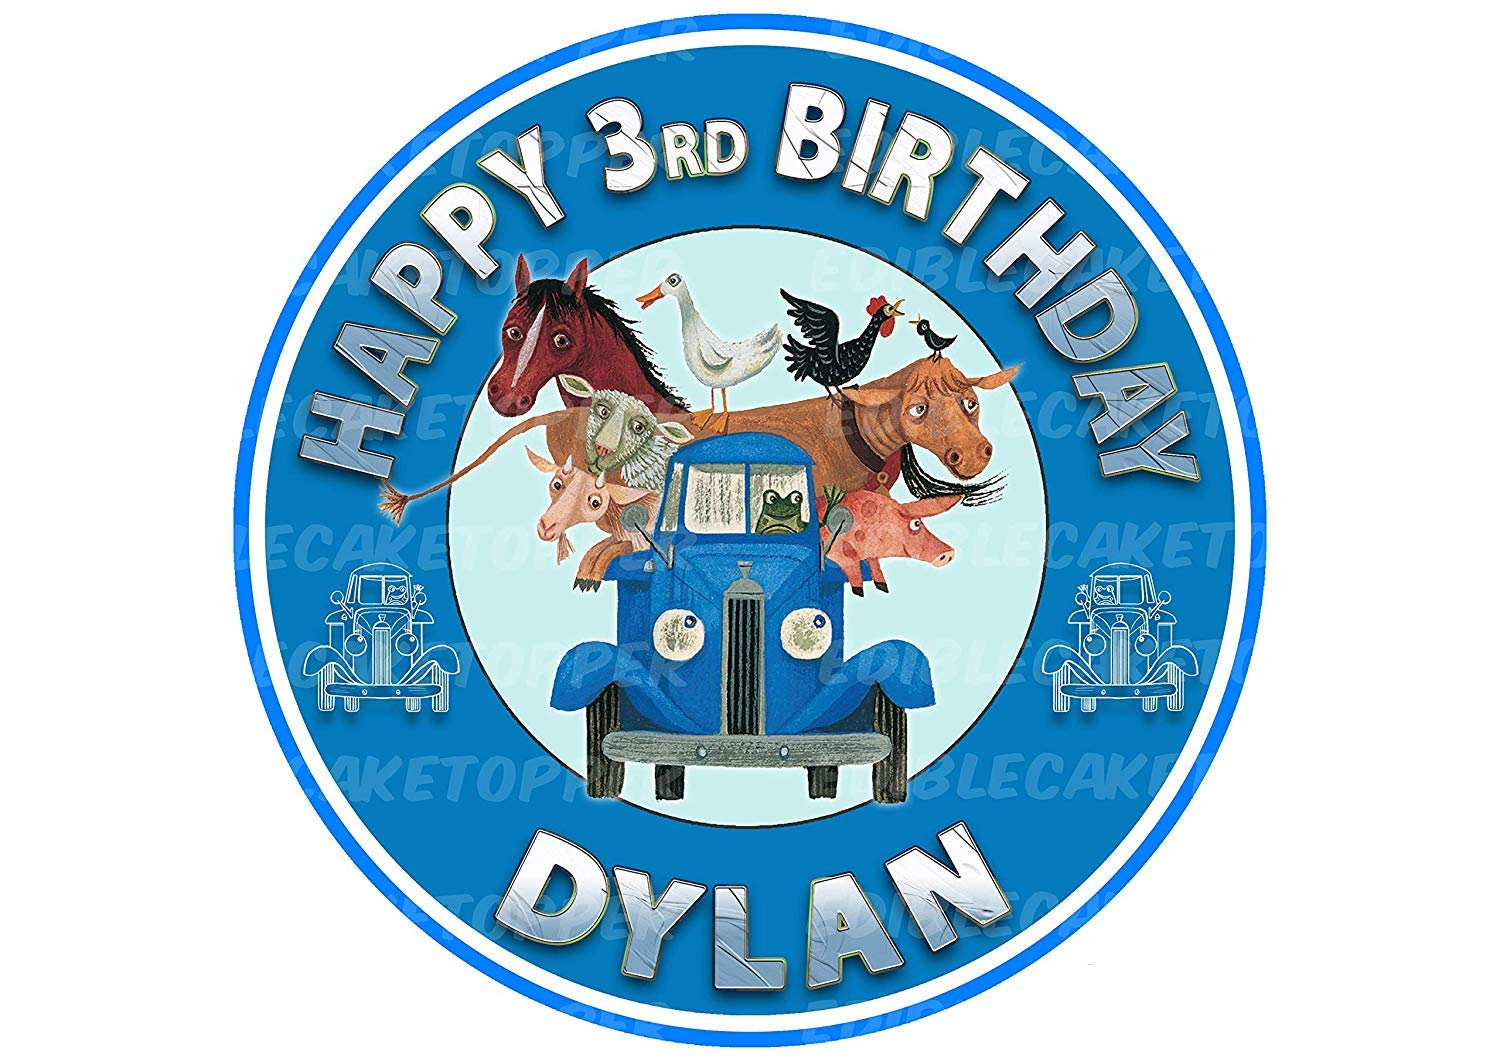 EdibleInkArt Little Blue Truck Edible Cake Topper Personalized Birthday 6'' Round Circle Decoration Party Birthday Sugar Frosting Transfer Fondant Image ~ Best Quality Edible Image for Cake